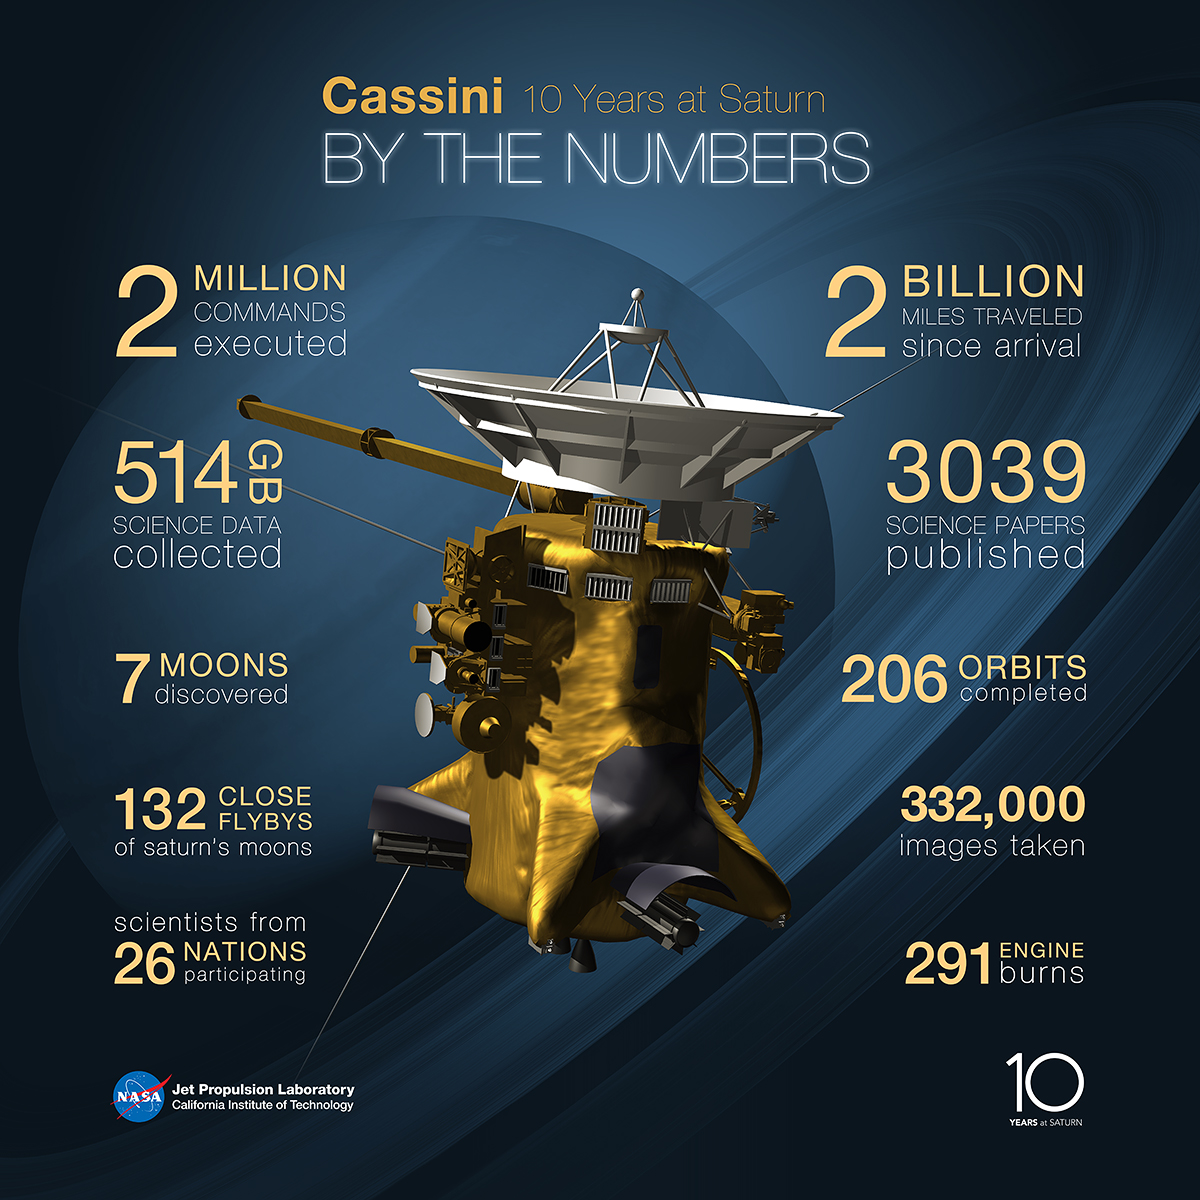 Cassini-Huygens Mission Marks 10 Years Of Studying Saturn ...